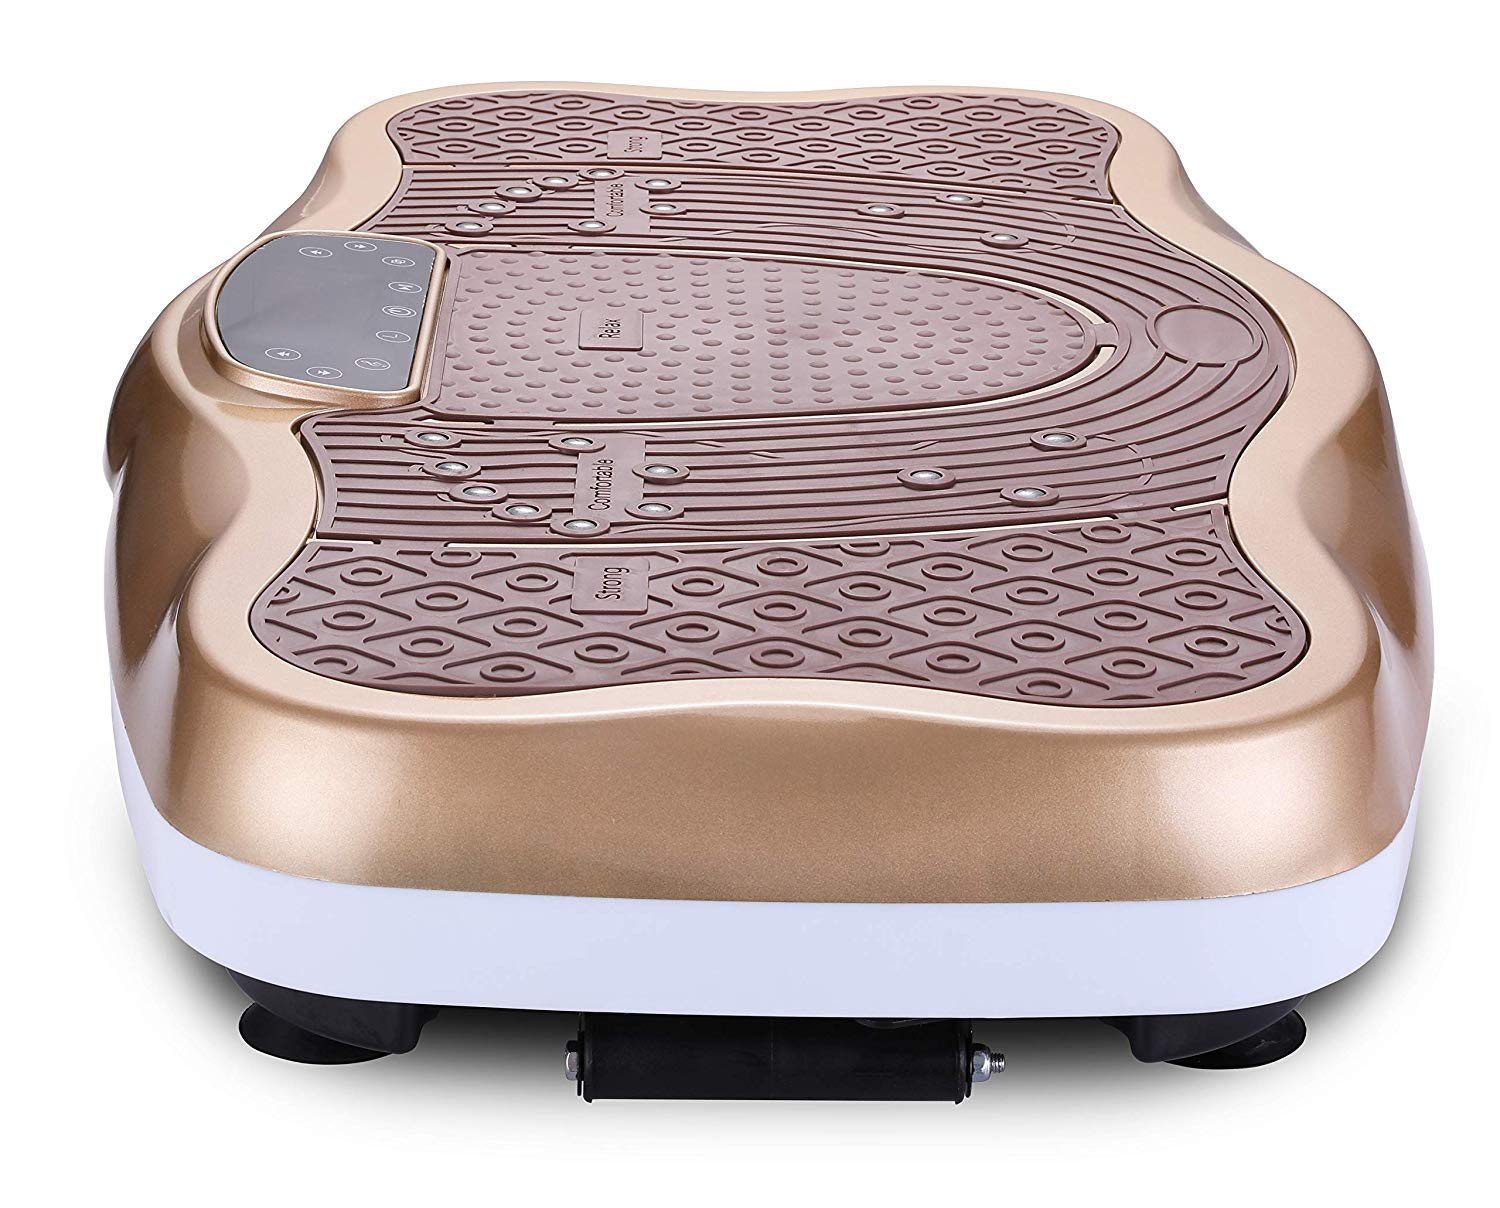 TODO Vibration Platform Power Plate Wholebody Vibrating Massager- Remote Control/Bluetooth Music/USB Connection/Adjustable Speed(Gold-Wave) by TODO (Image #6)